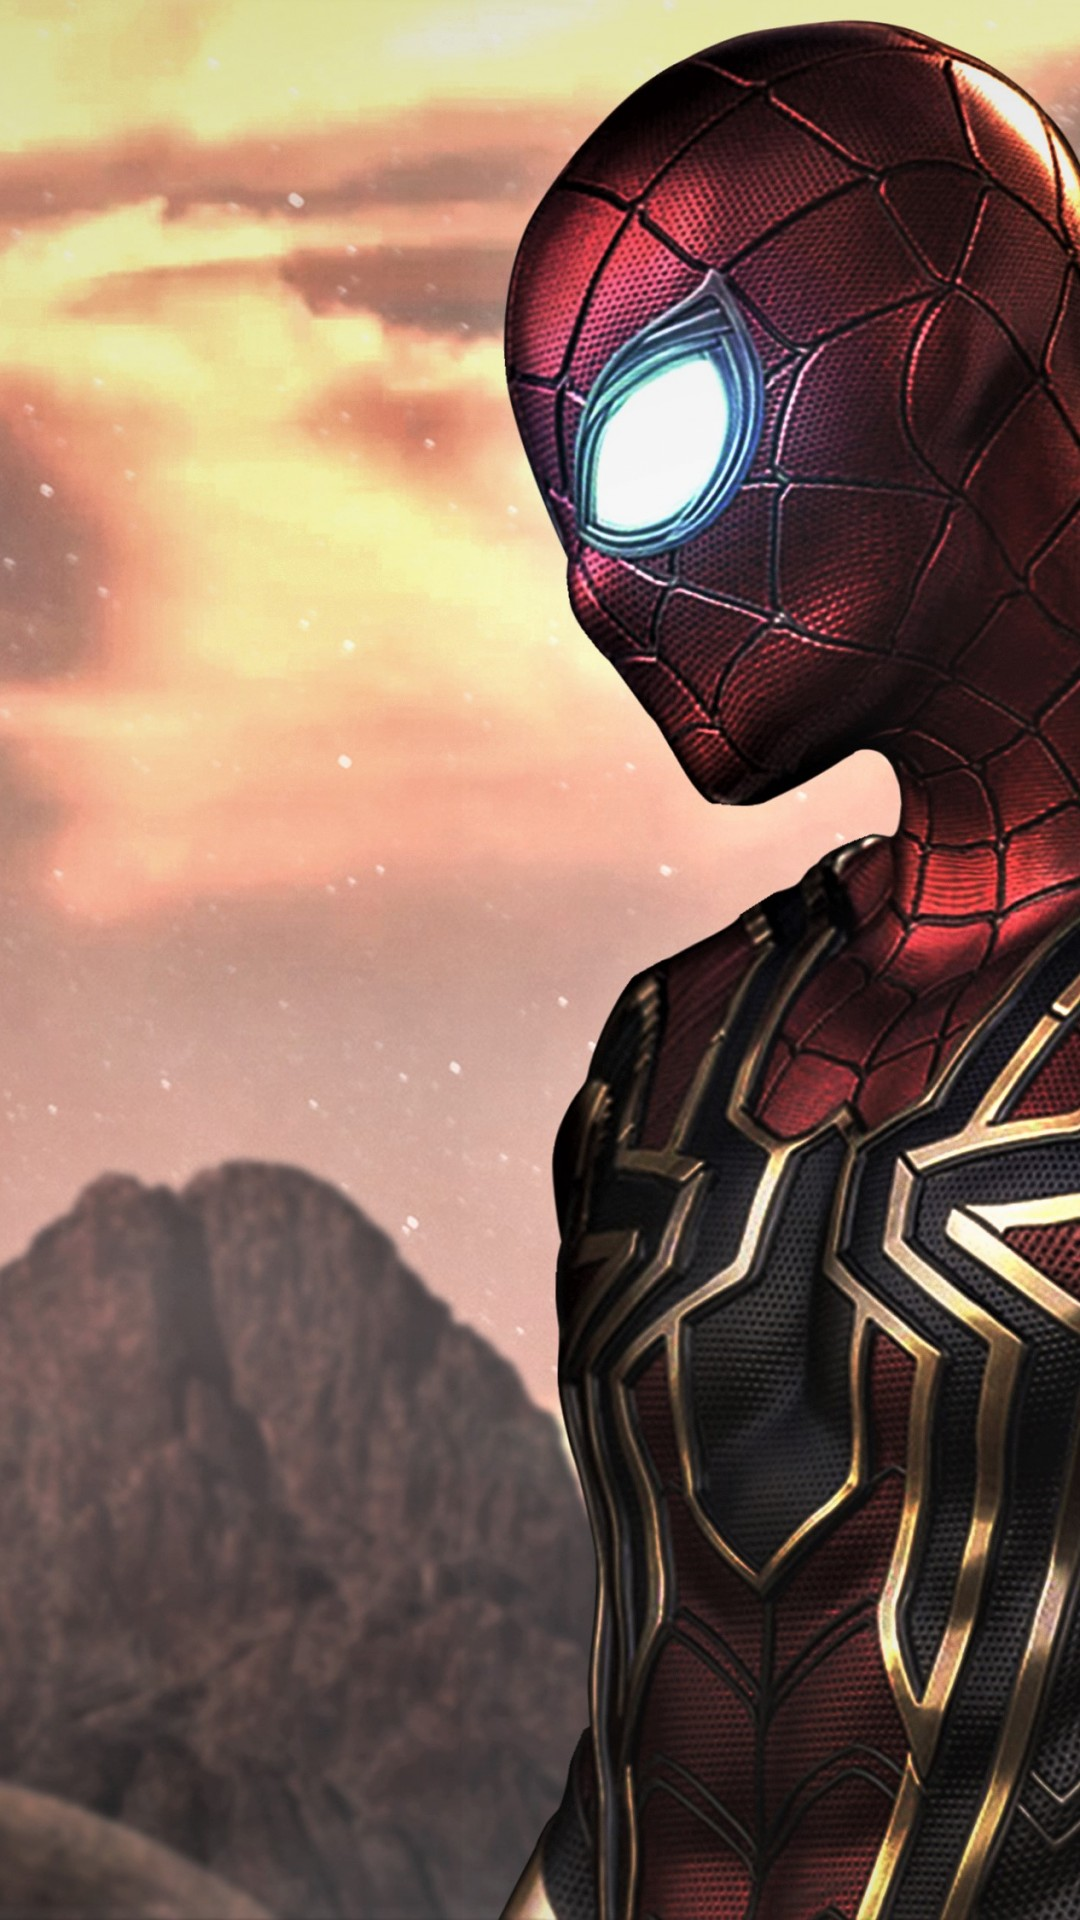 Wallpaper Spider Man Far From Home Poster 4k Movies 21158